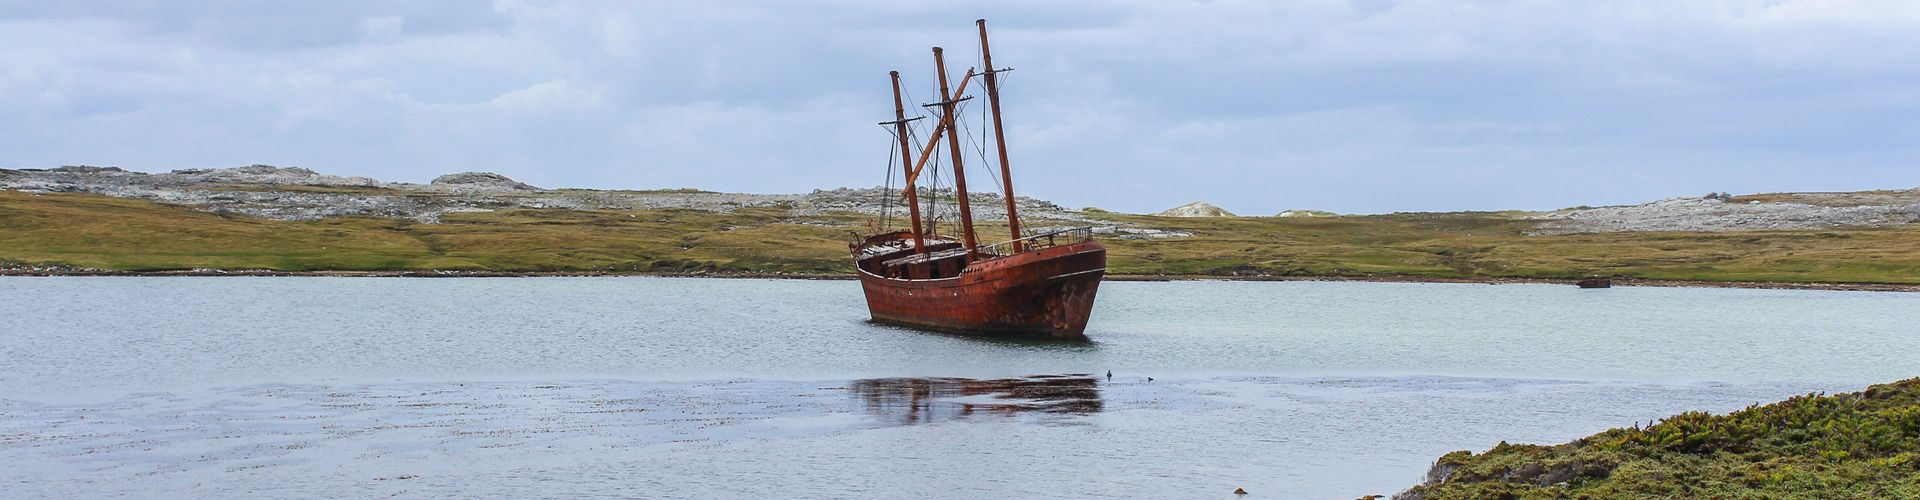 Falkland Islands Expedition: Past & Present